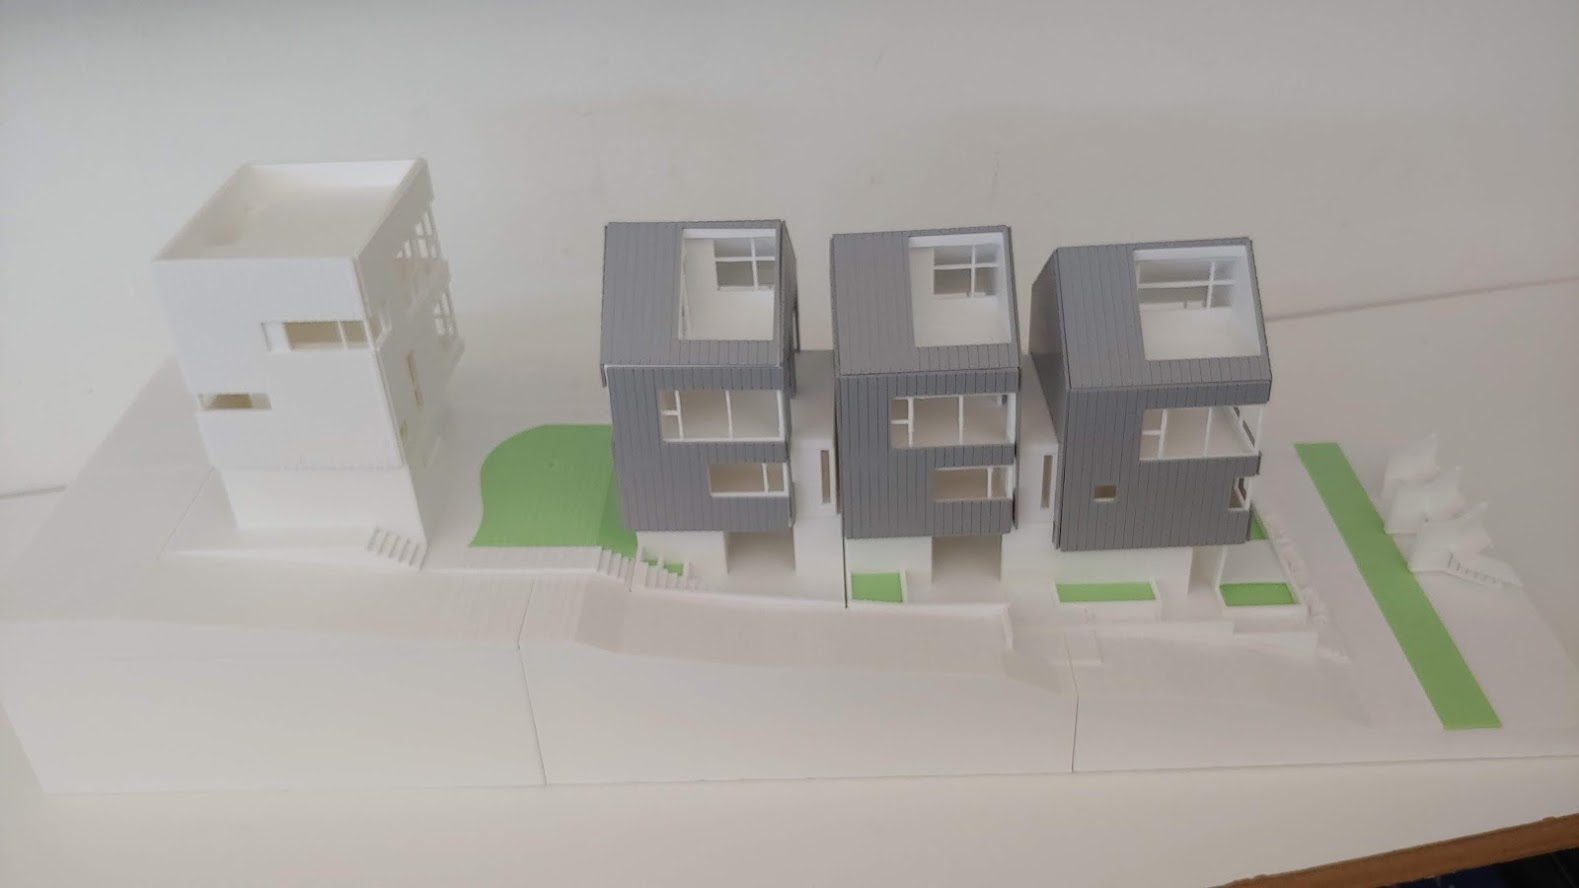 Here's a model of 4 new houses that were constructed on what was a single family lot approx. 50' x 160'. Only 1 parking space is required for each house.